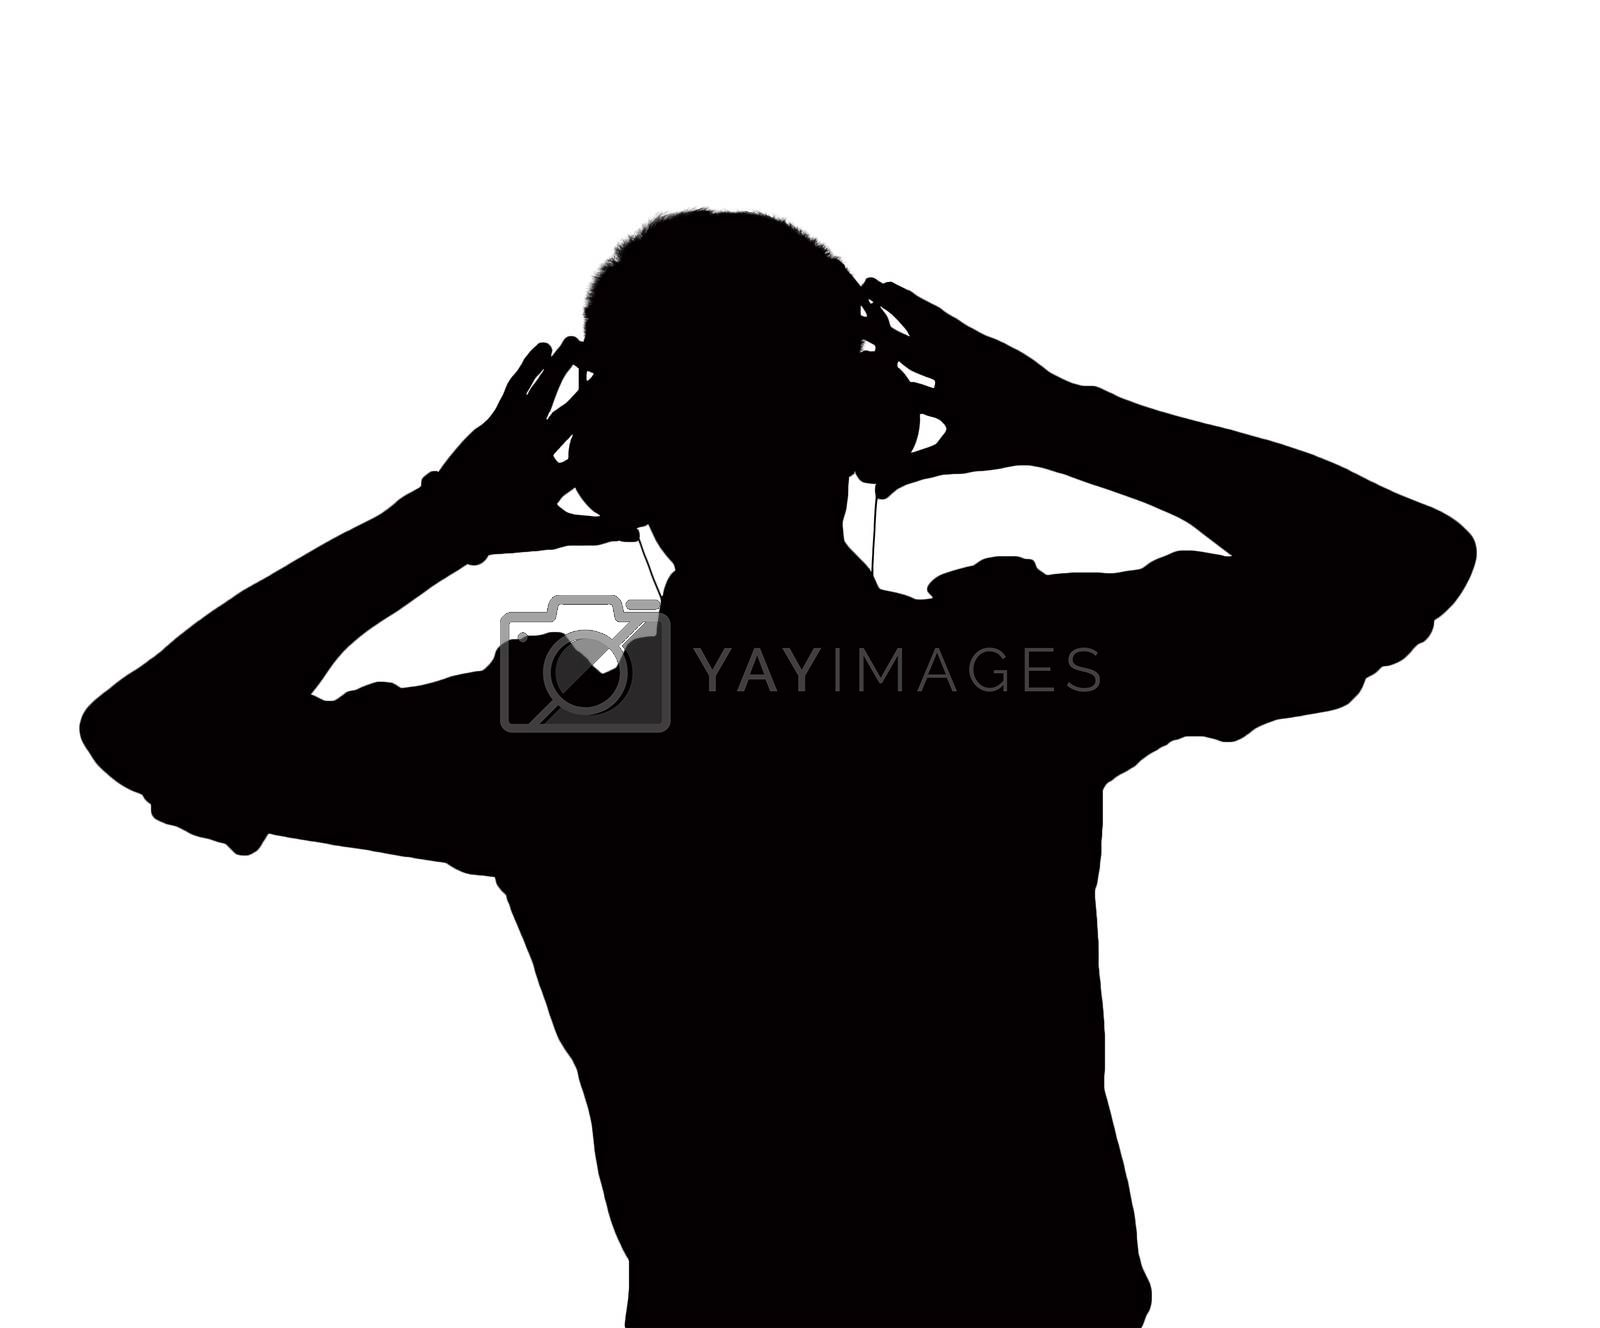 Silhouette of man listening to headphones.